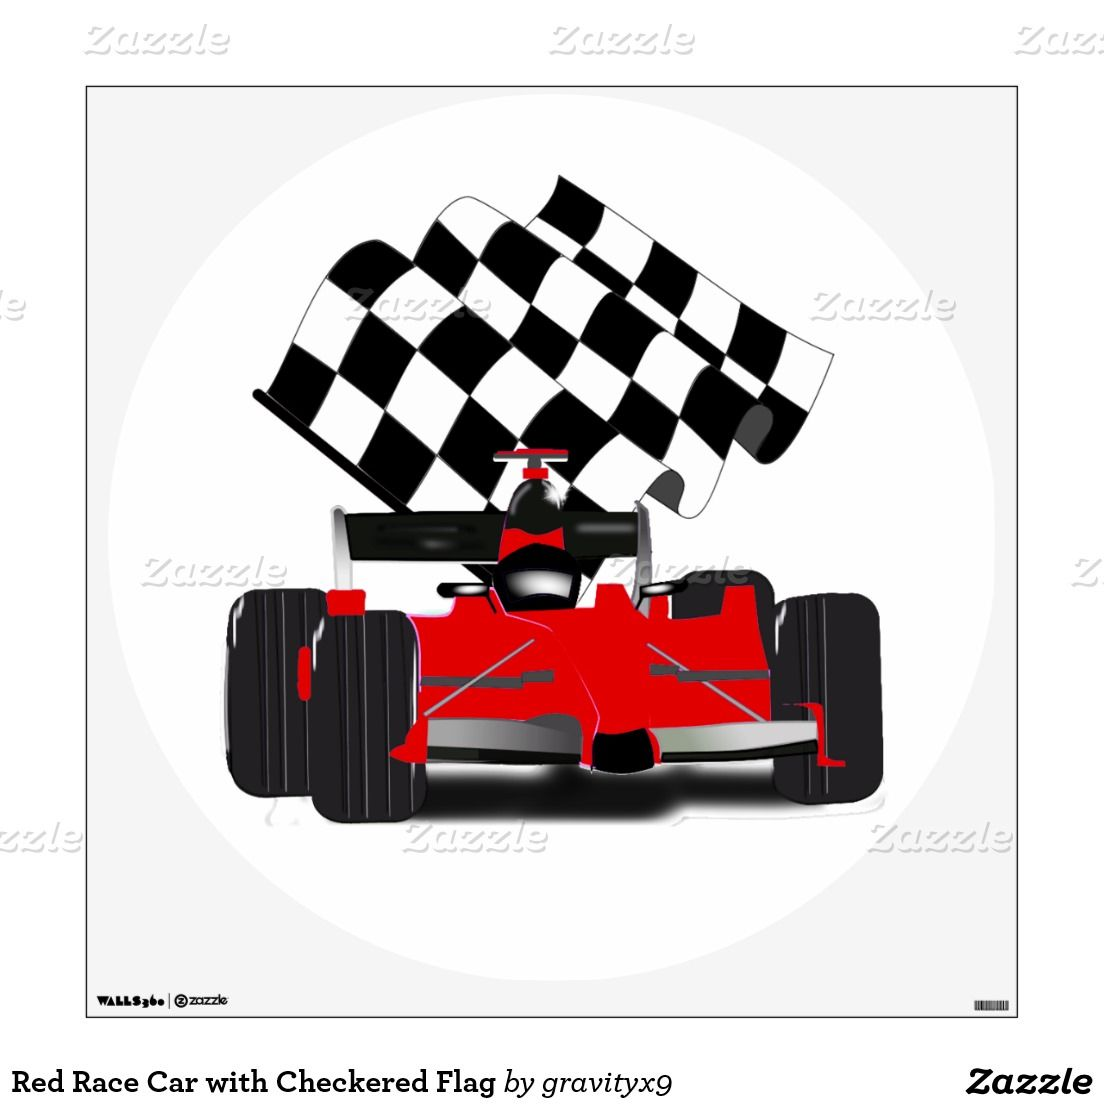 Red Race Car With Checkered Flag Wall Decal Zazzle Com Red Race Checkered Flag Room Decals [ 1104 x 1104 Pixel ]